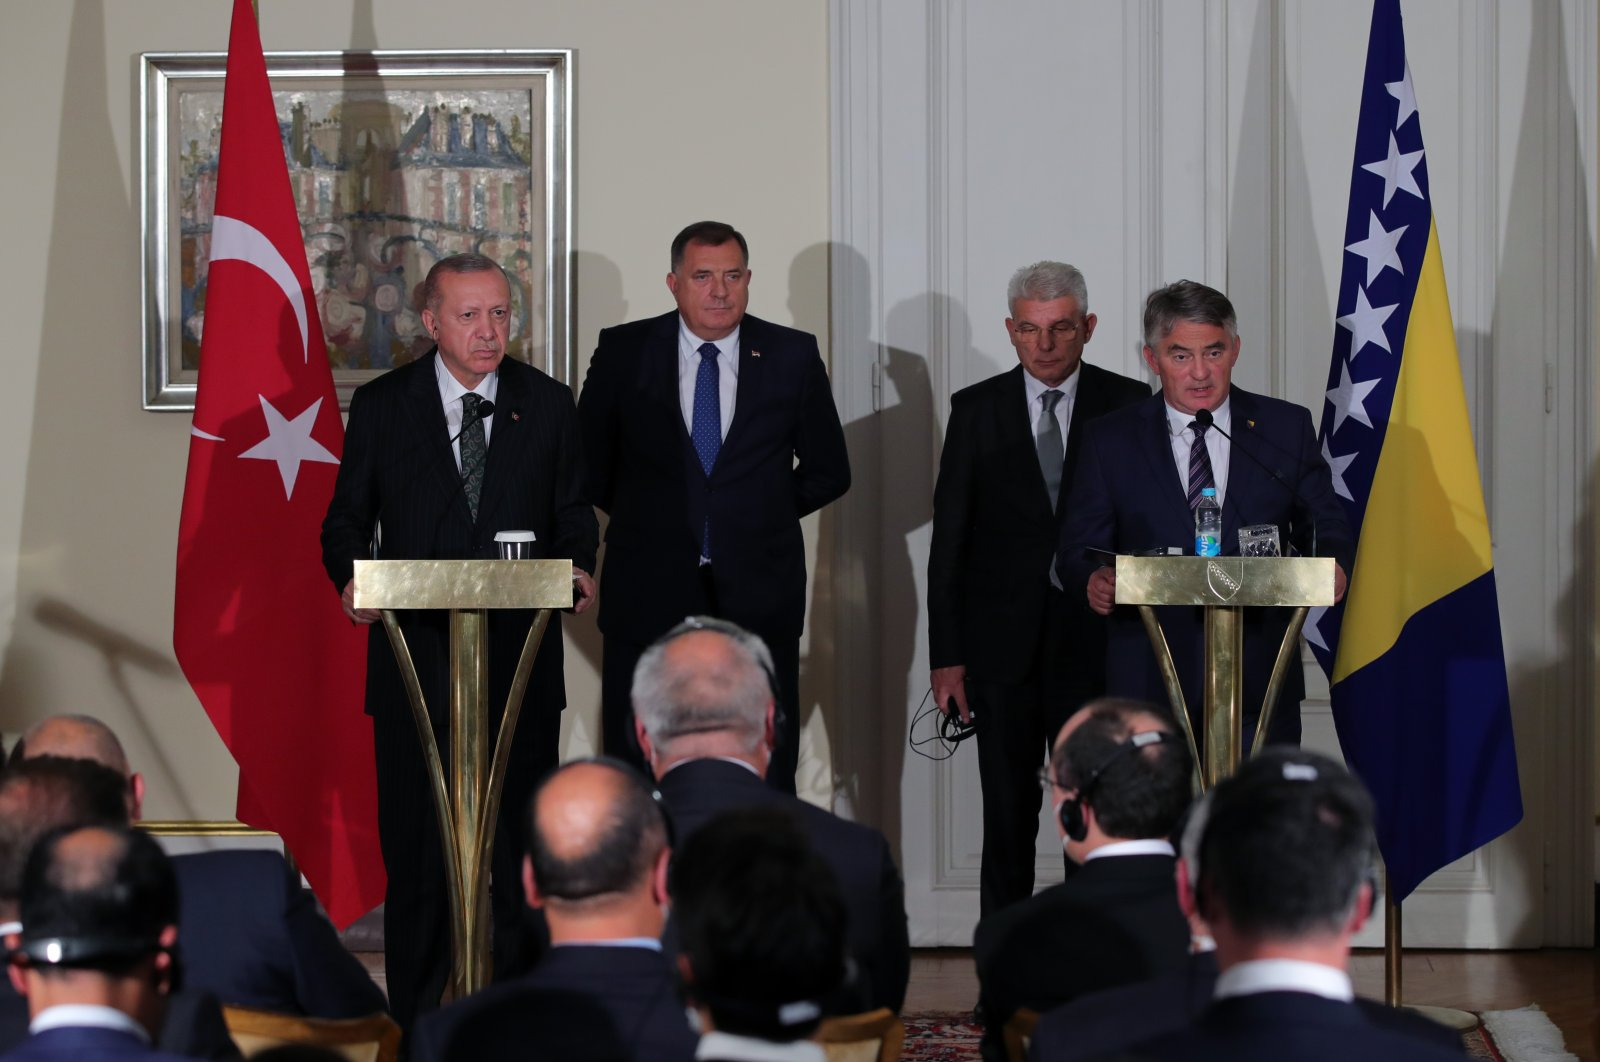 President Recep Tayyip Erdoğan speaks at a news conference held with the members of the Presidential Council at the Presidential Palace of Bosnia-Herzegovina, Aug. 27, 2021. (AA Photo)